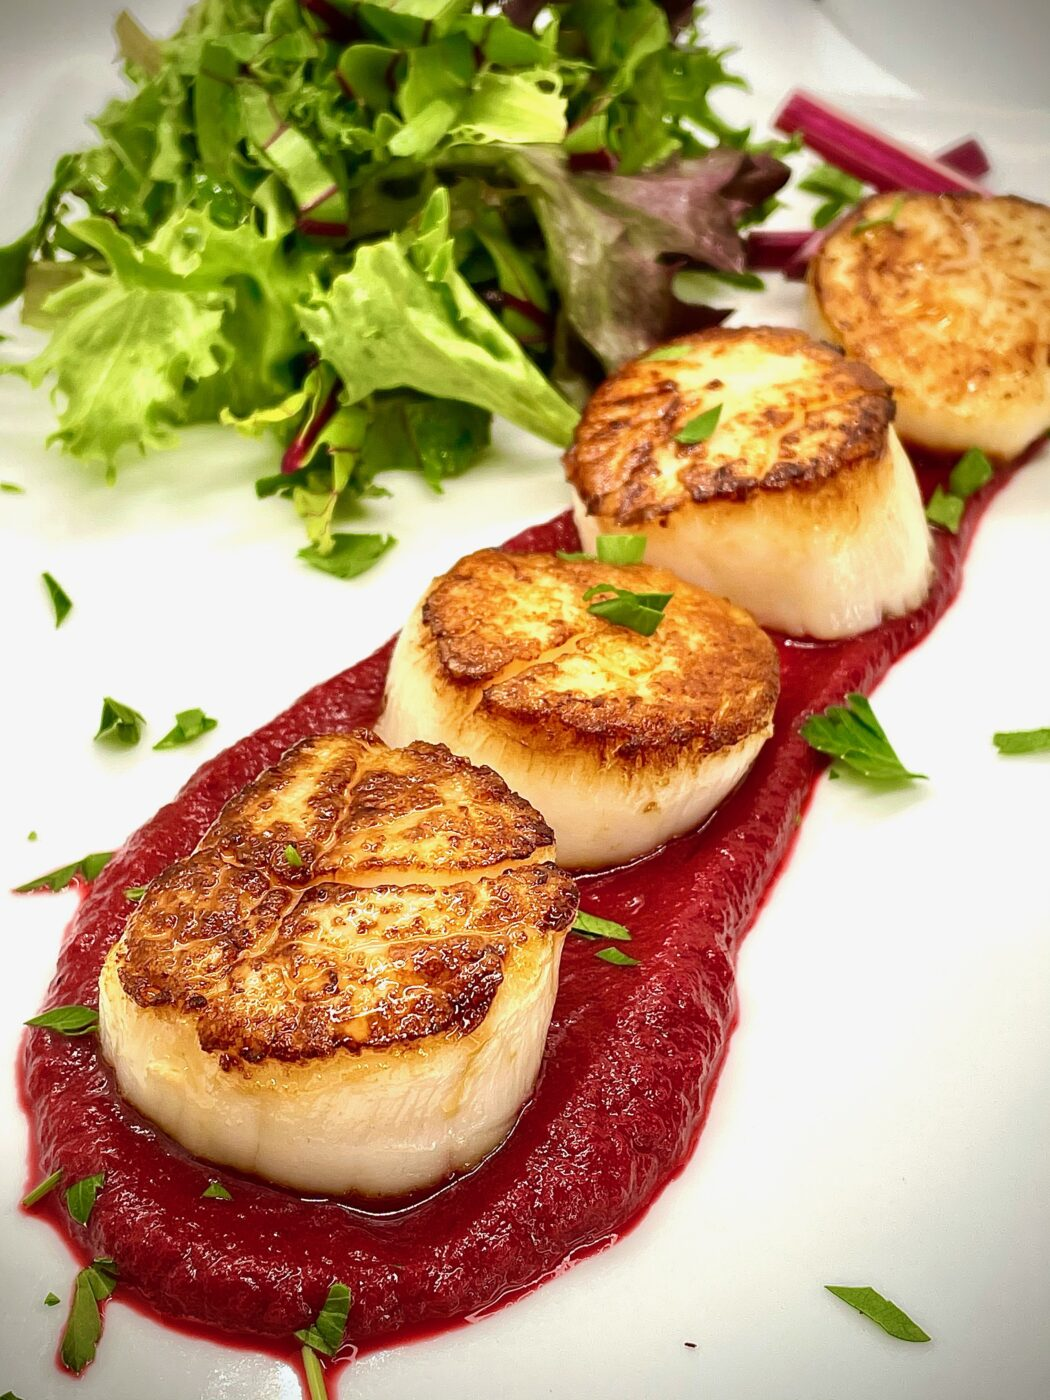 Seared Scallops with Roasted Garlic Beet Puree from THE CLUB